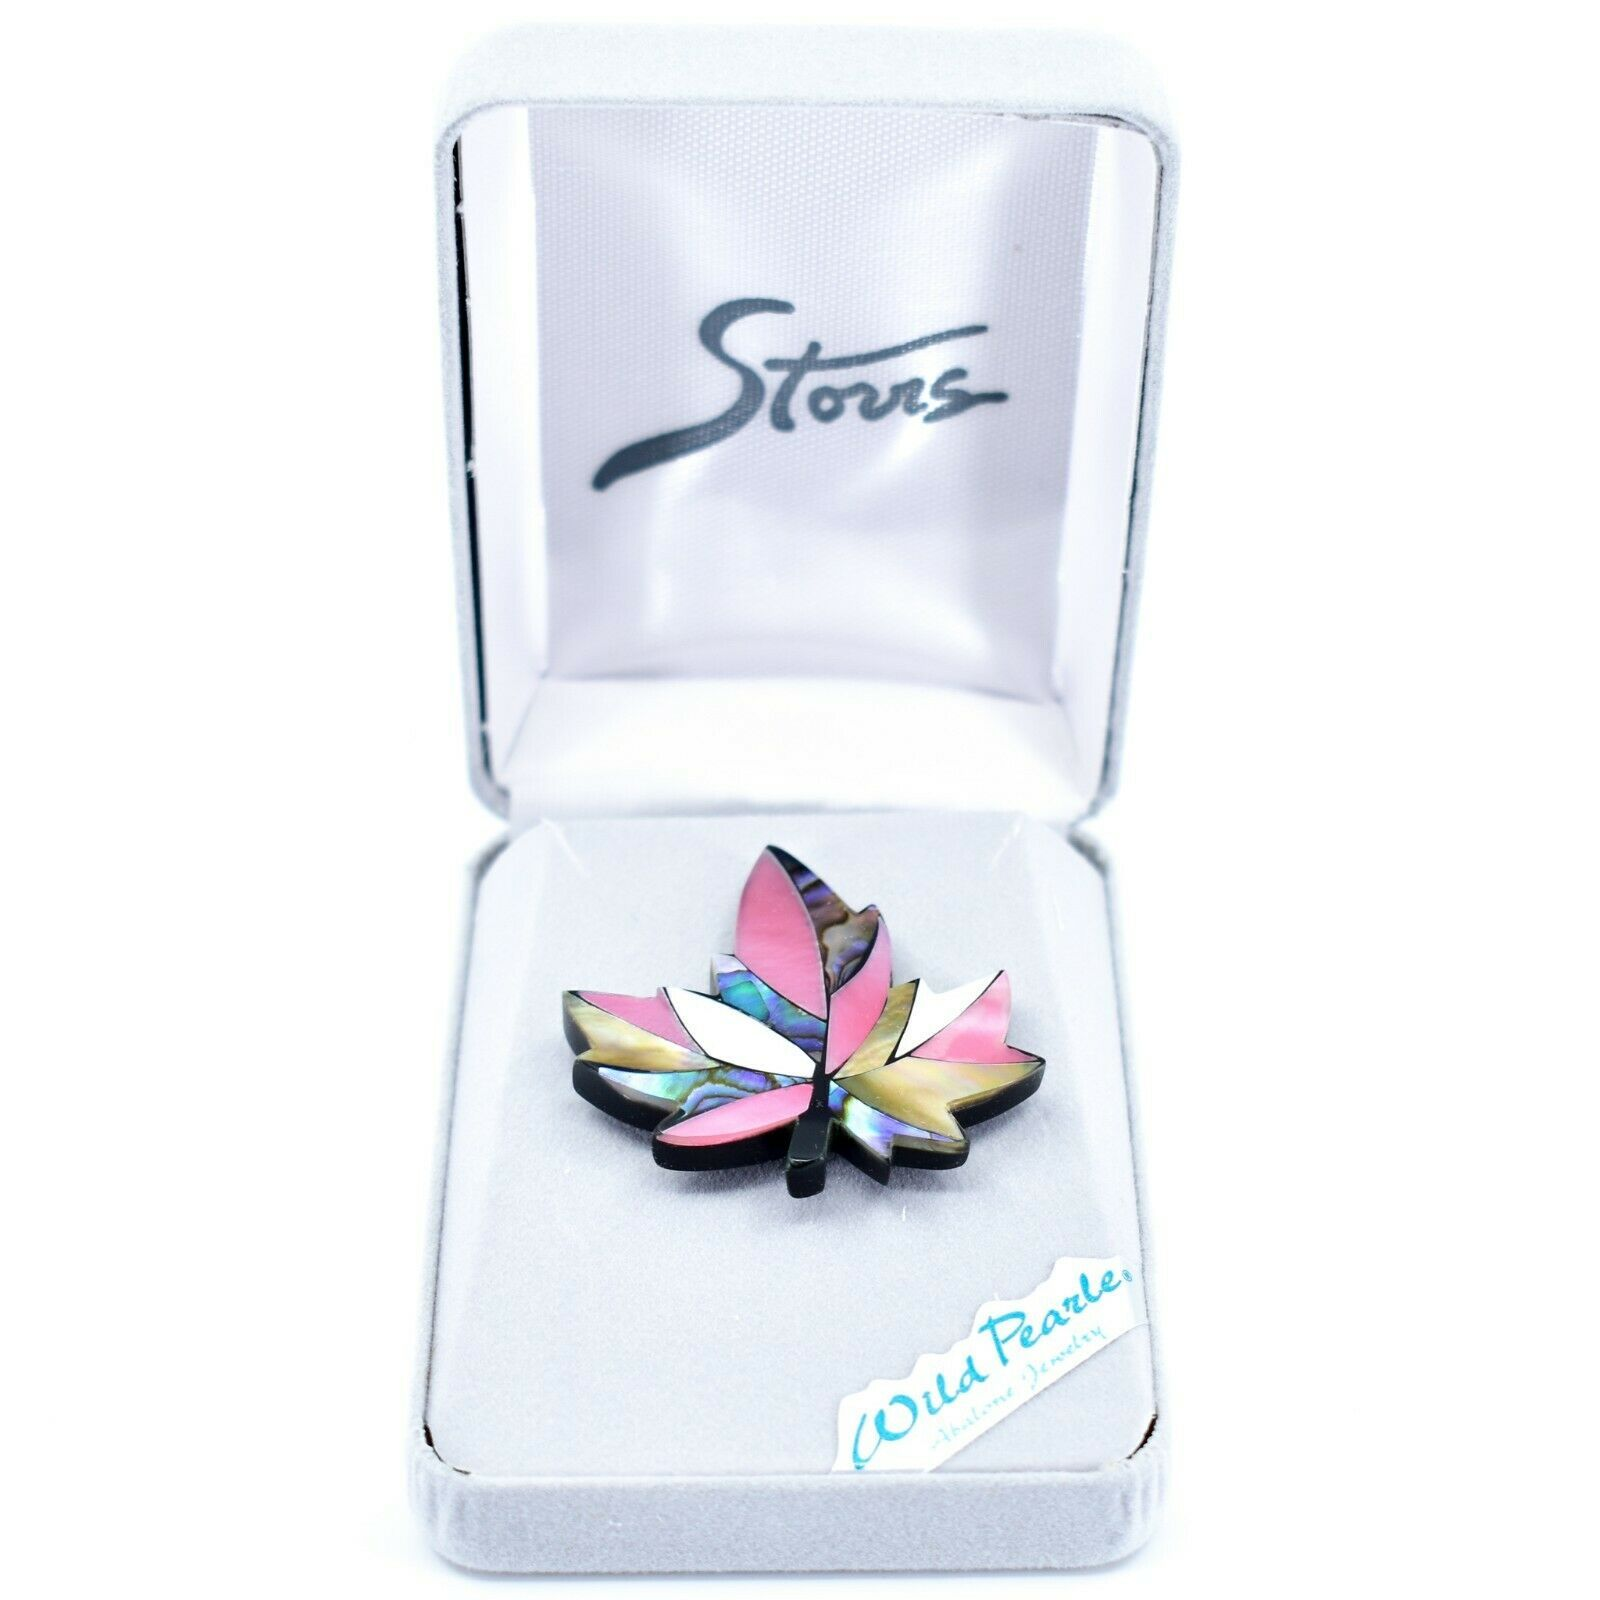 A.T. Storrs Wild Pearle Blush Abalone Shell Maple Leaf Silver Tone Pin Brooch